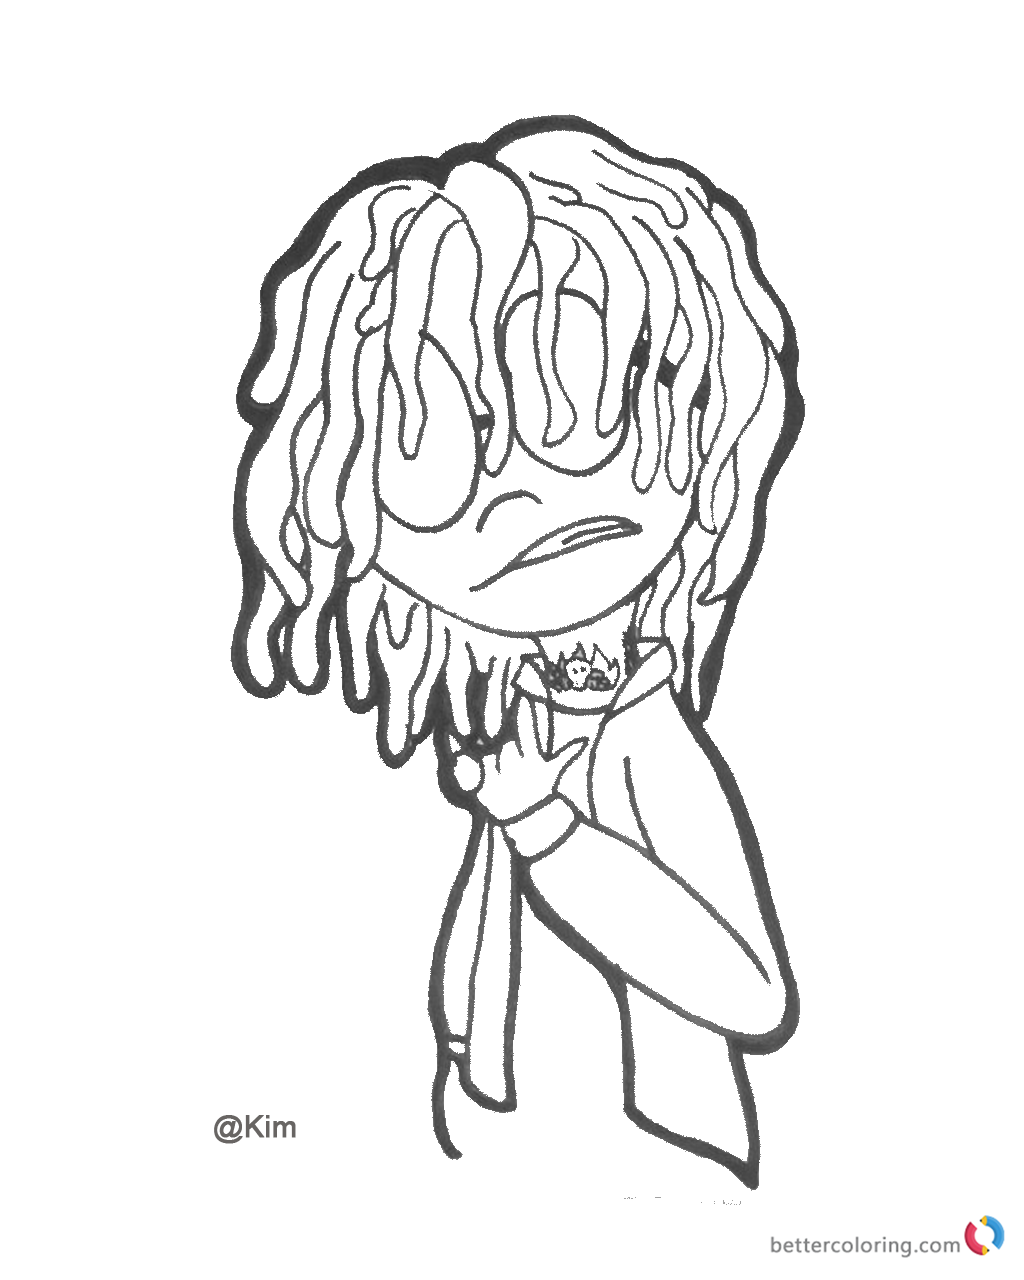 Lil Pump Cartoon Coloring Pages Free Printable Coloring Pages